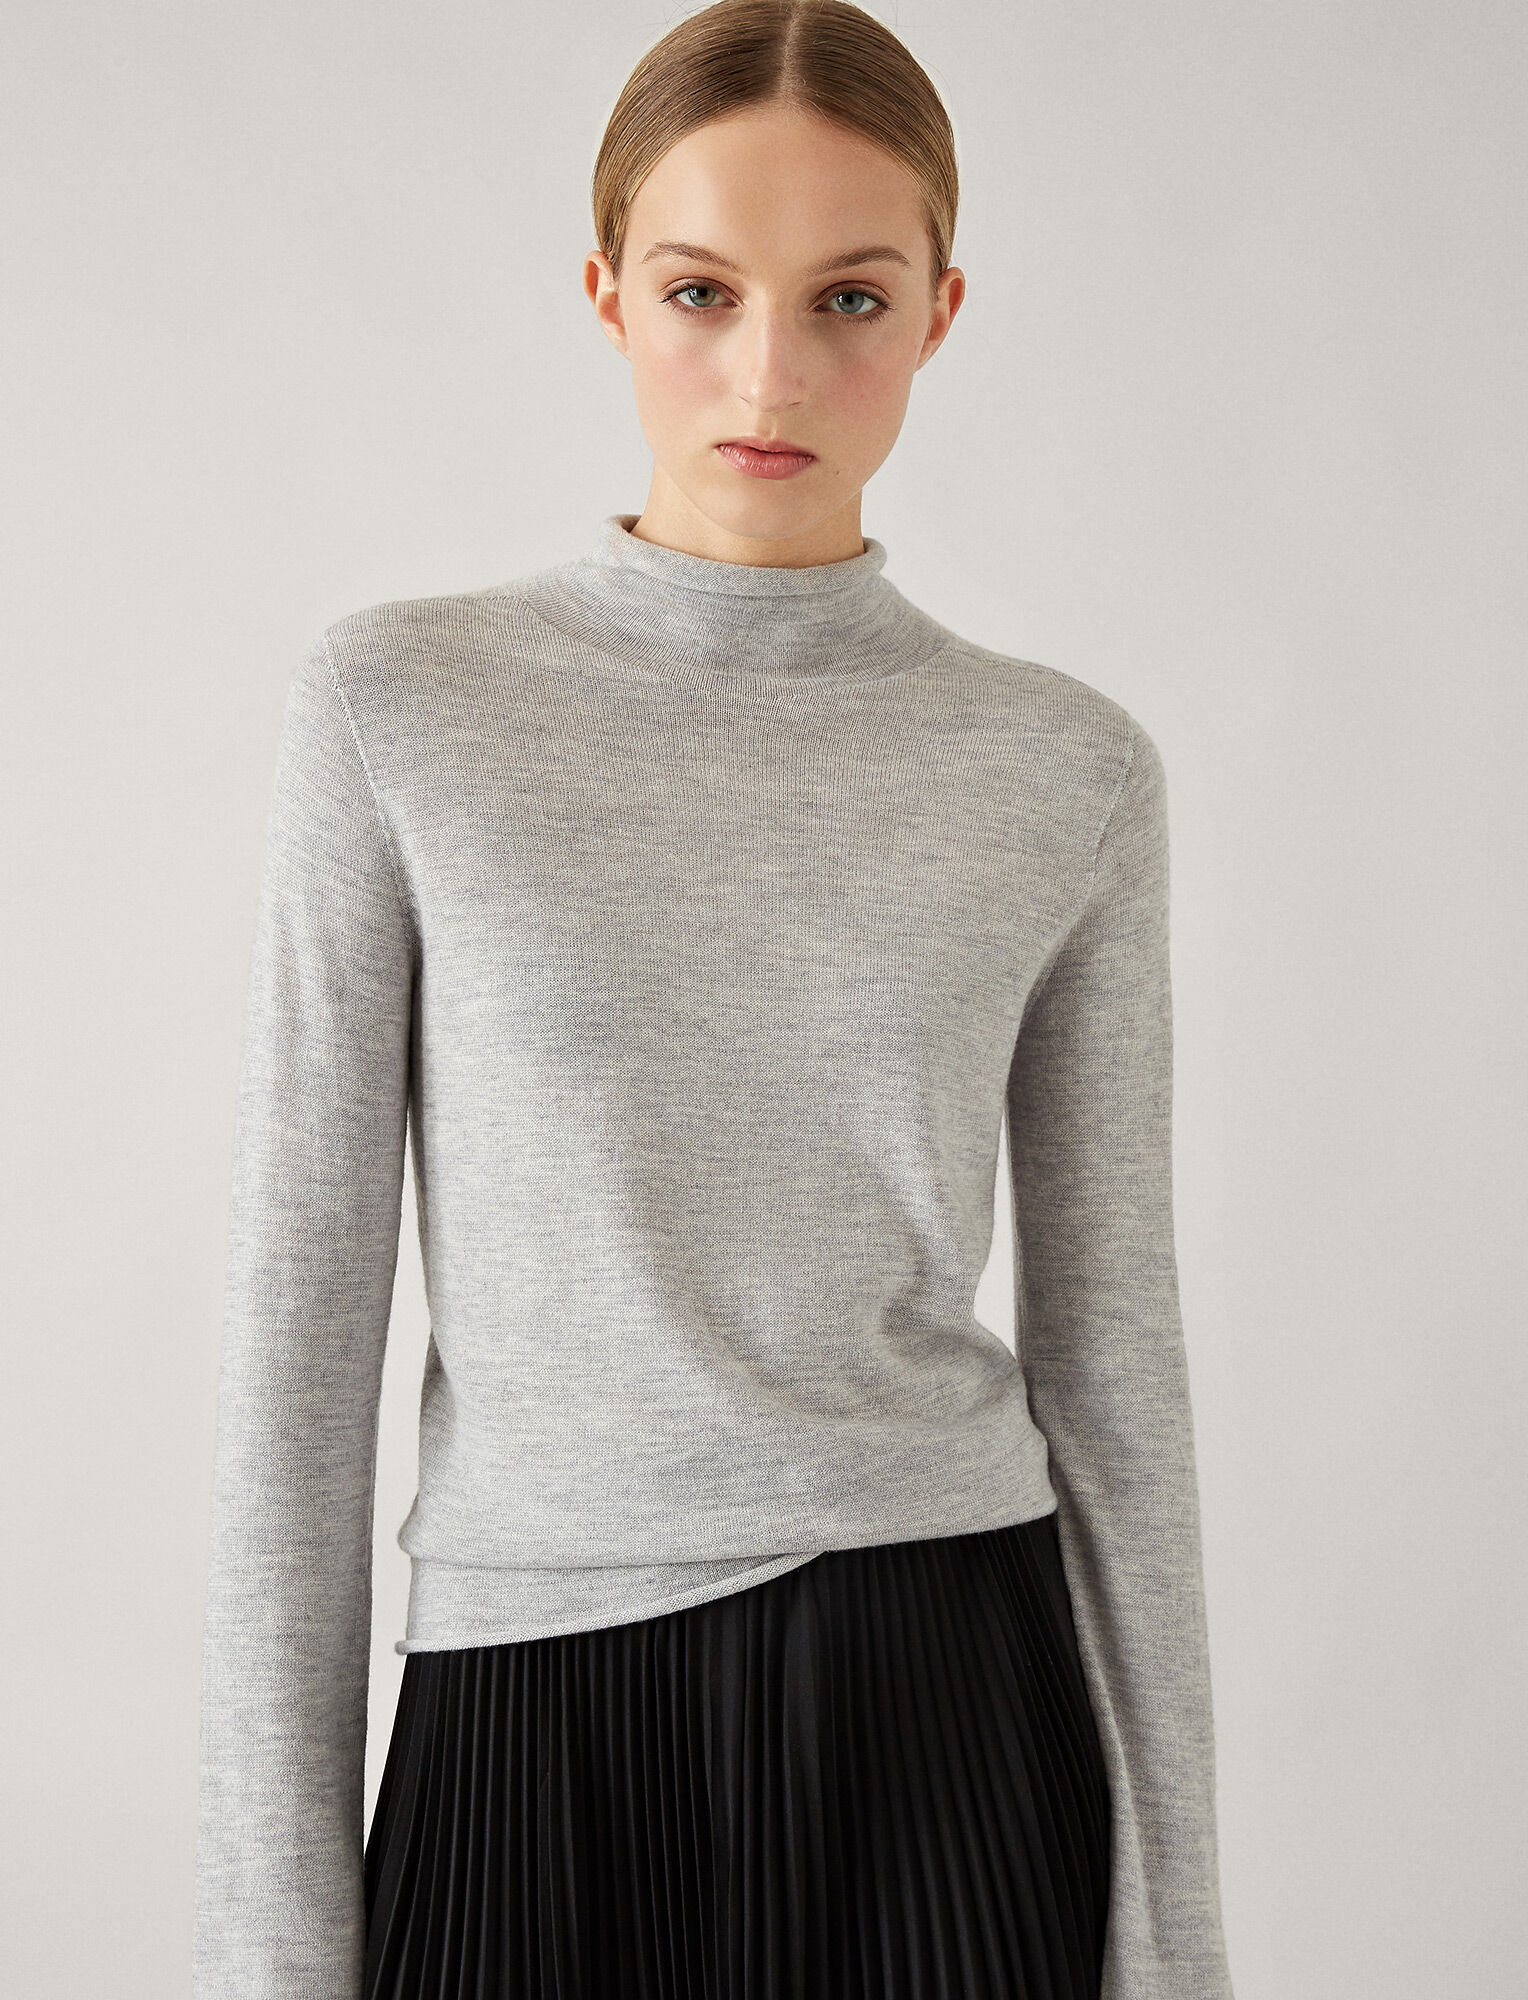 Joseph, High Neck Seamless Knit, in GREY CHINE